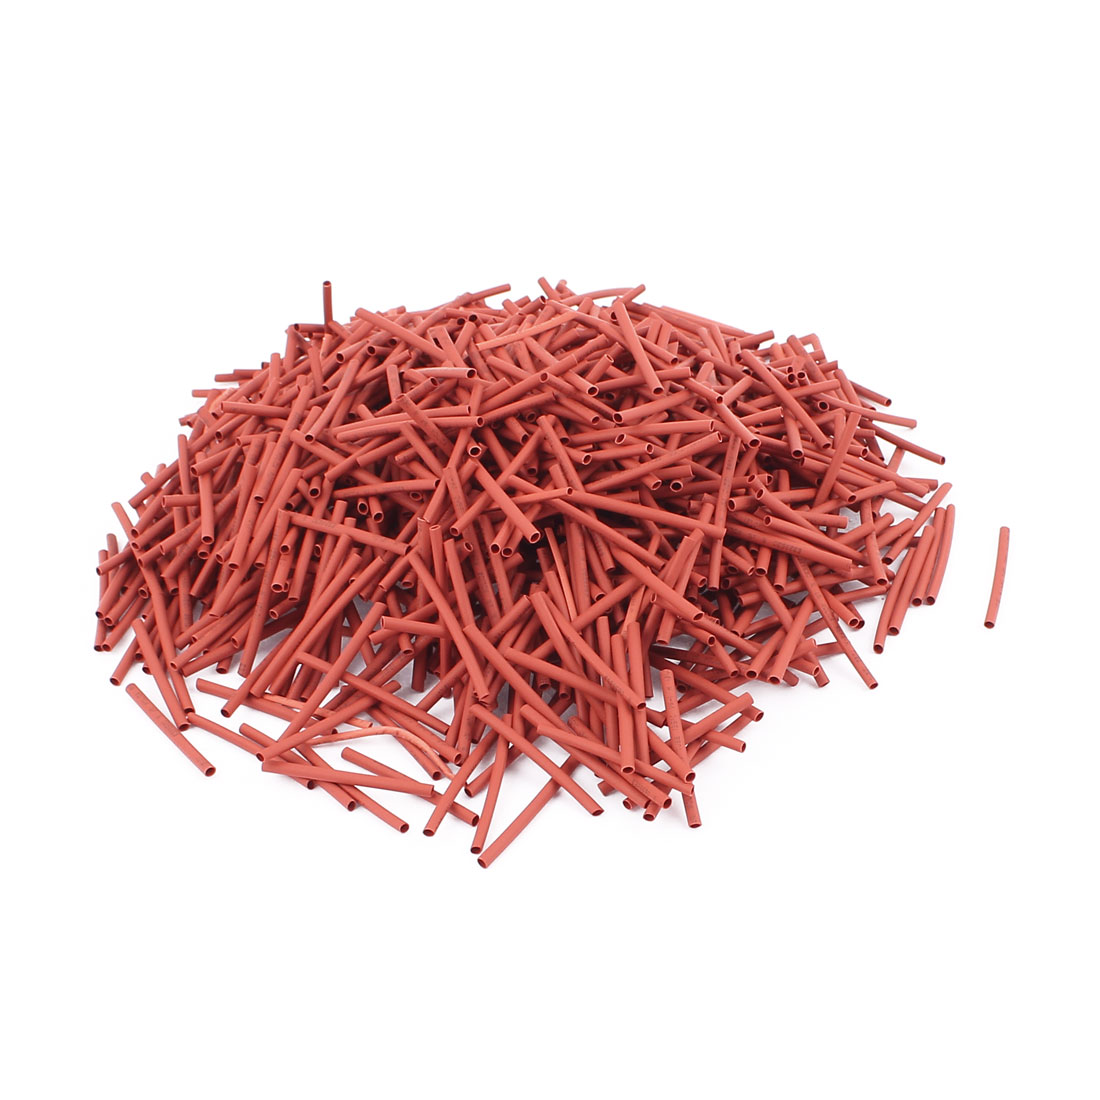 30mm Length Polyolefin Heat Shrink Tubing Tube Sleeve Wrap Cable Red 800Pcs